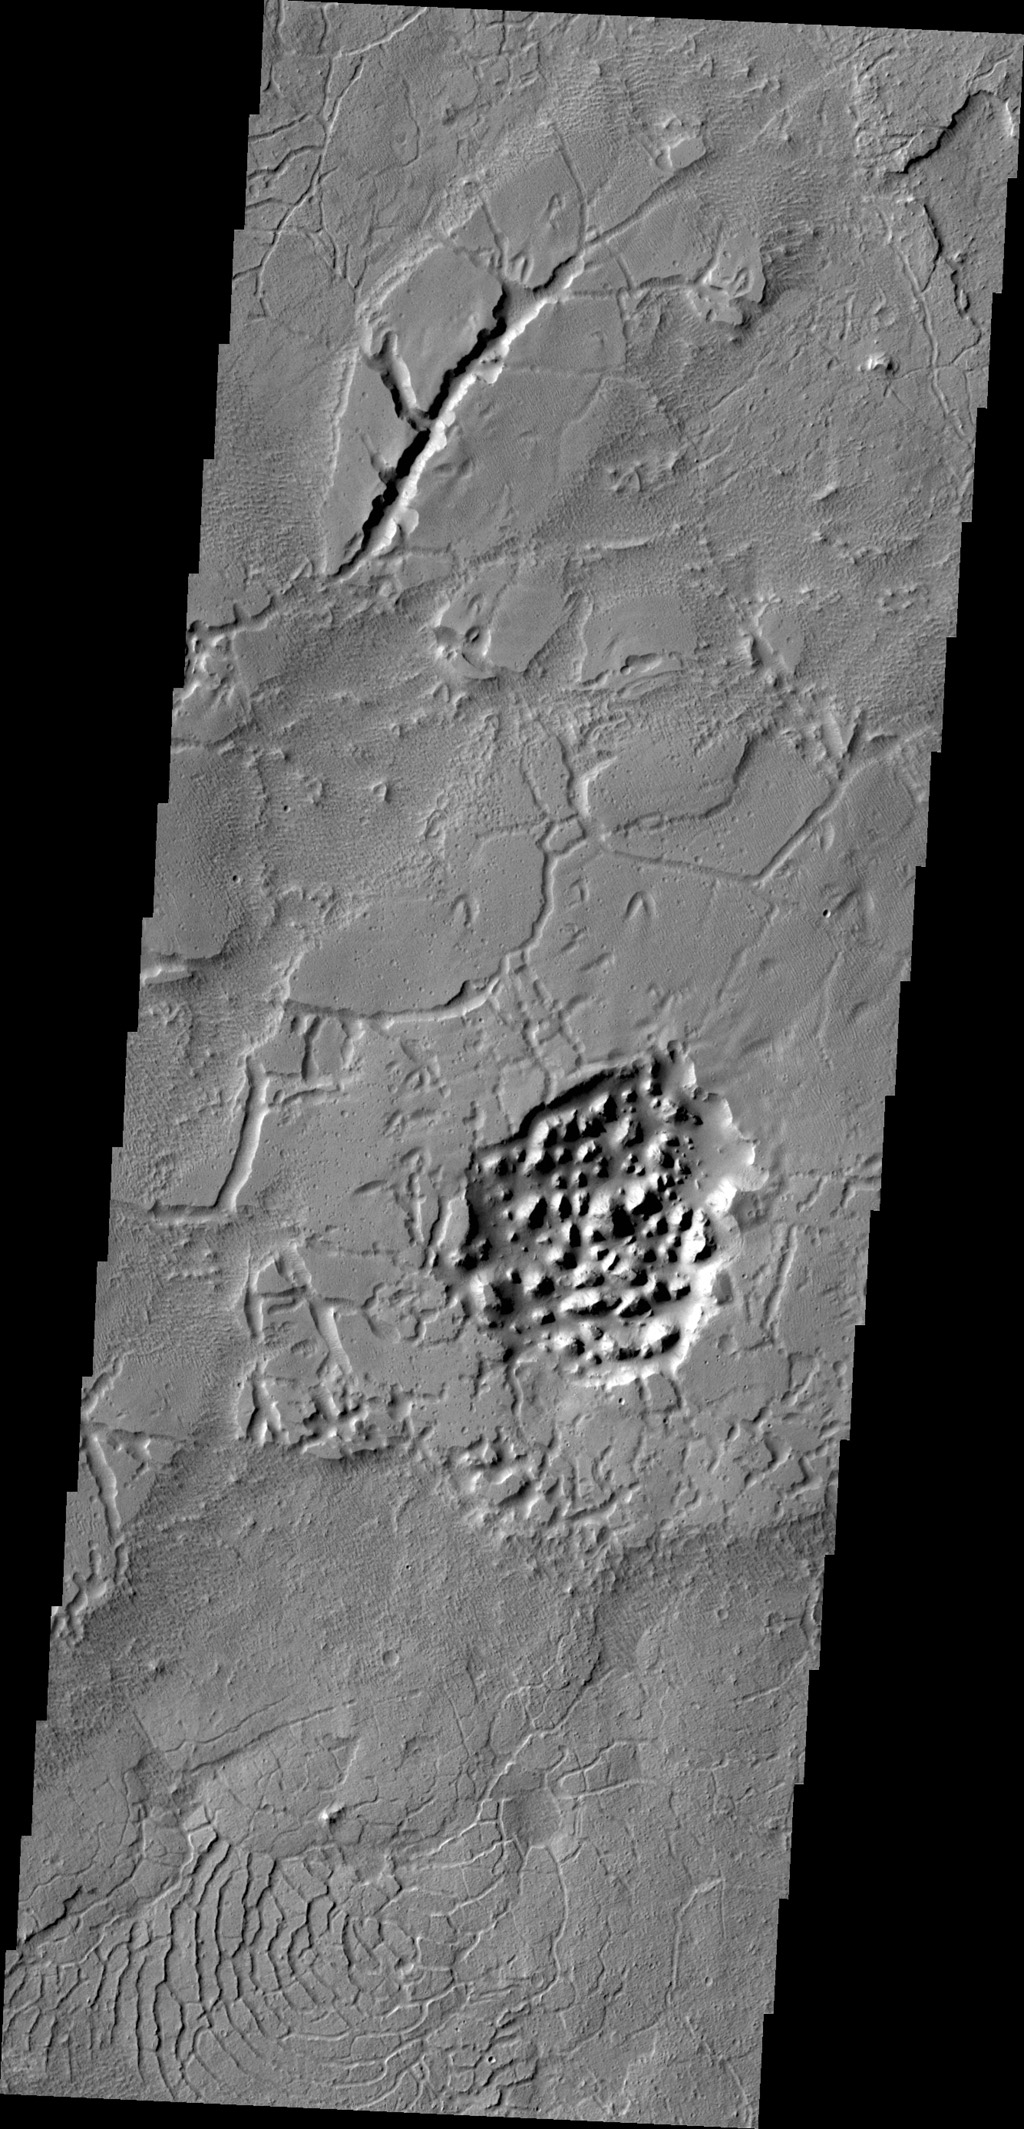 The Avernus region contains several different surface features. These include tectonic fractures, ridges, hills, and regions of chaos within isolated depressions termed cavi. This image was captured by NASA's 2001 Mars Odyssey spacecraft.